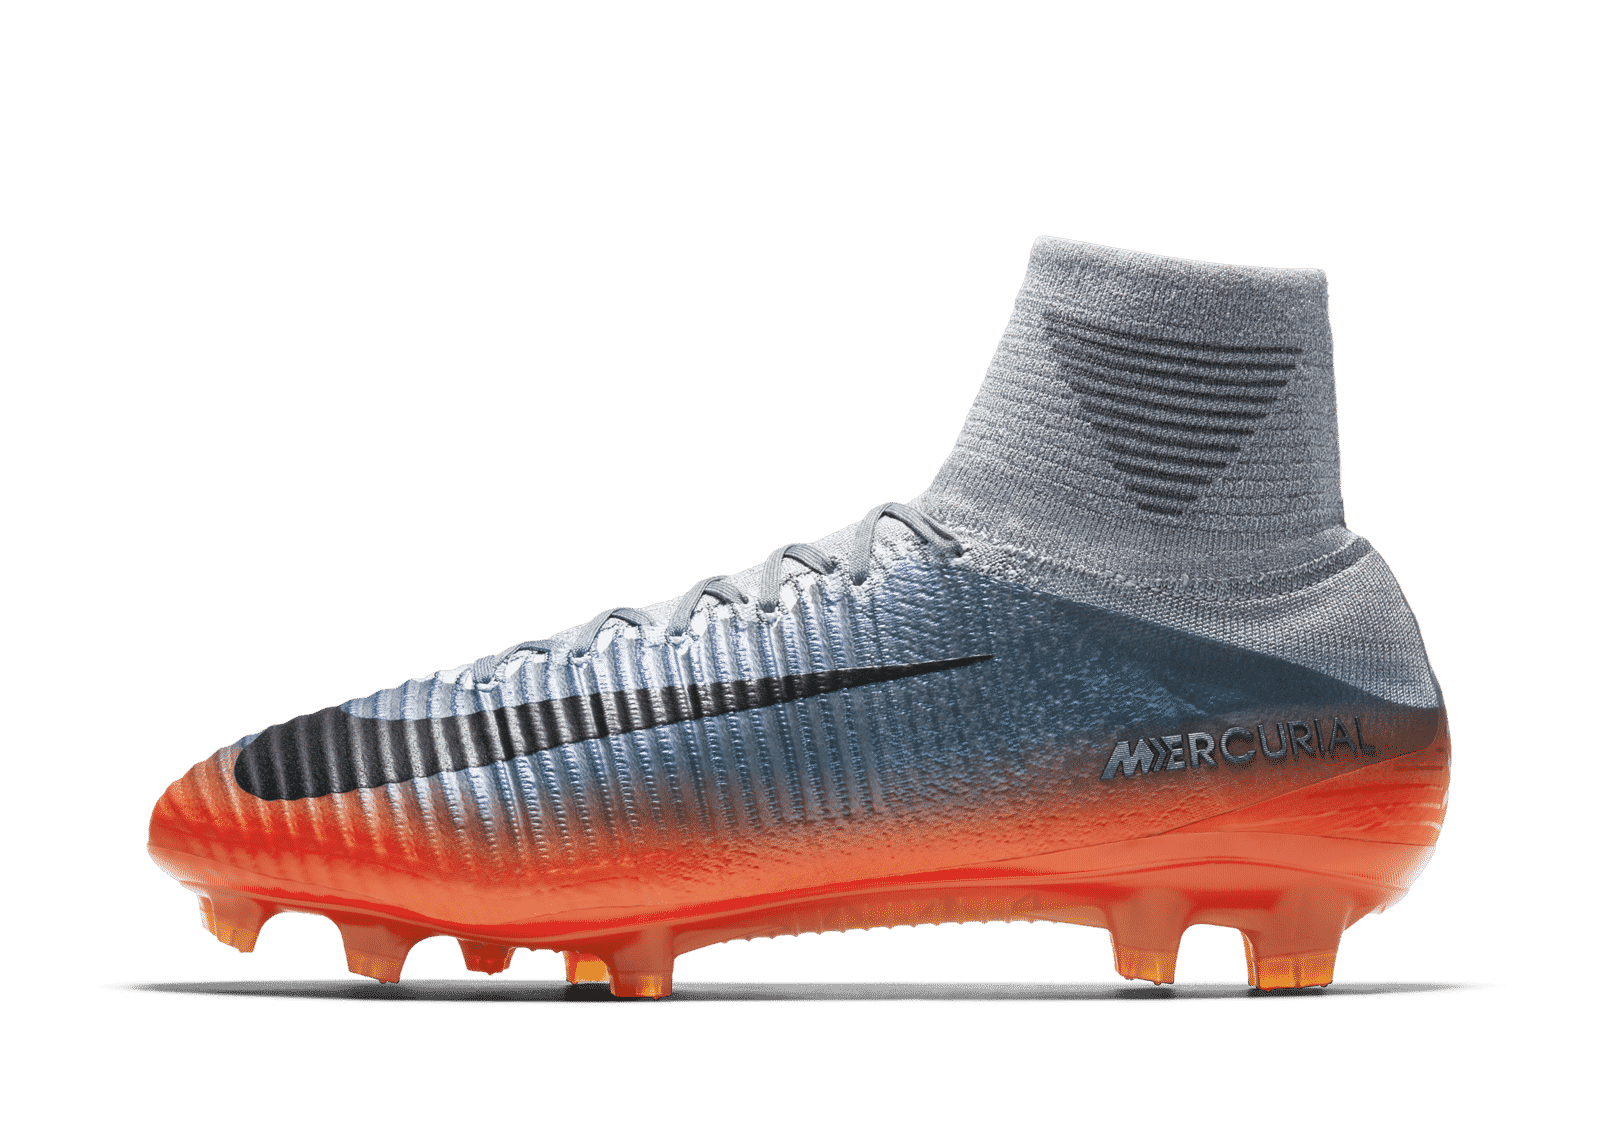 cristiano-ronaldo-nike-mercurial-superfly-cr7-forged-for-greatness-boots